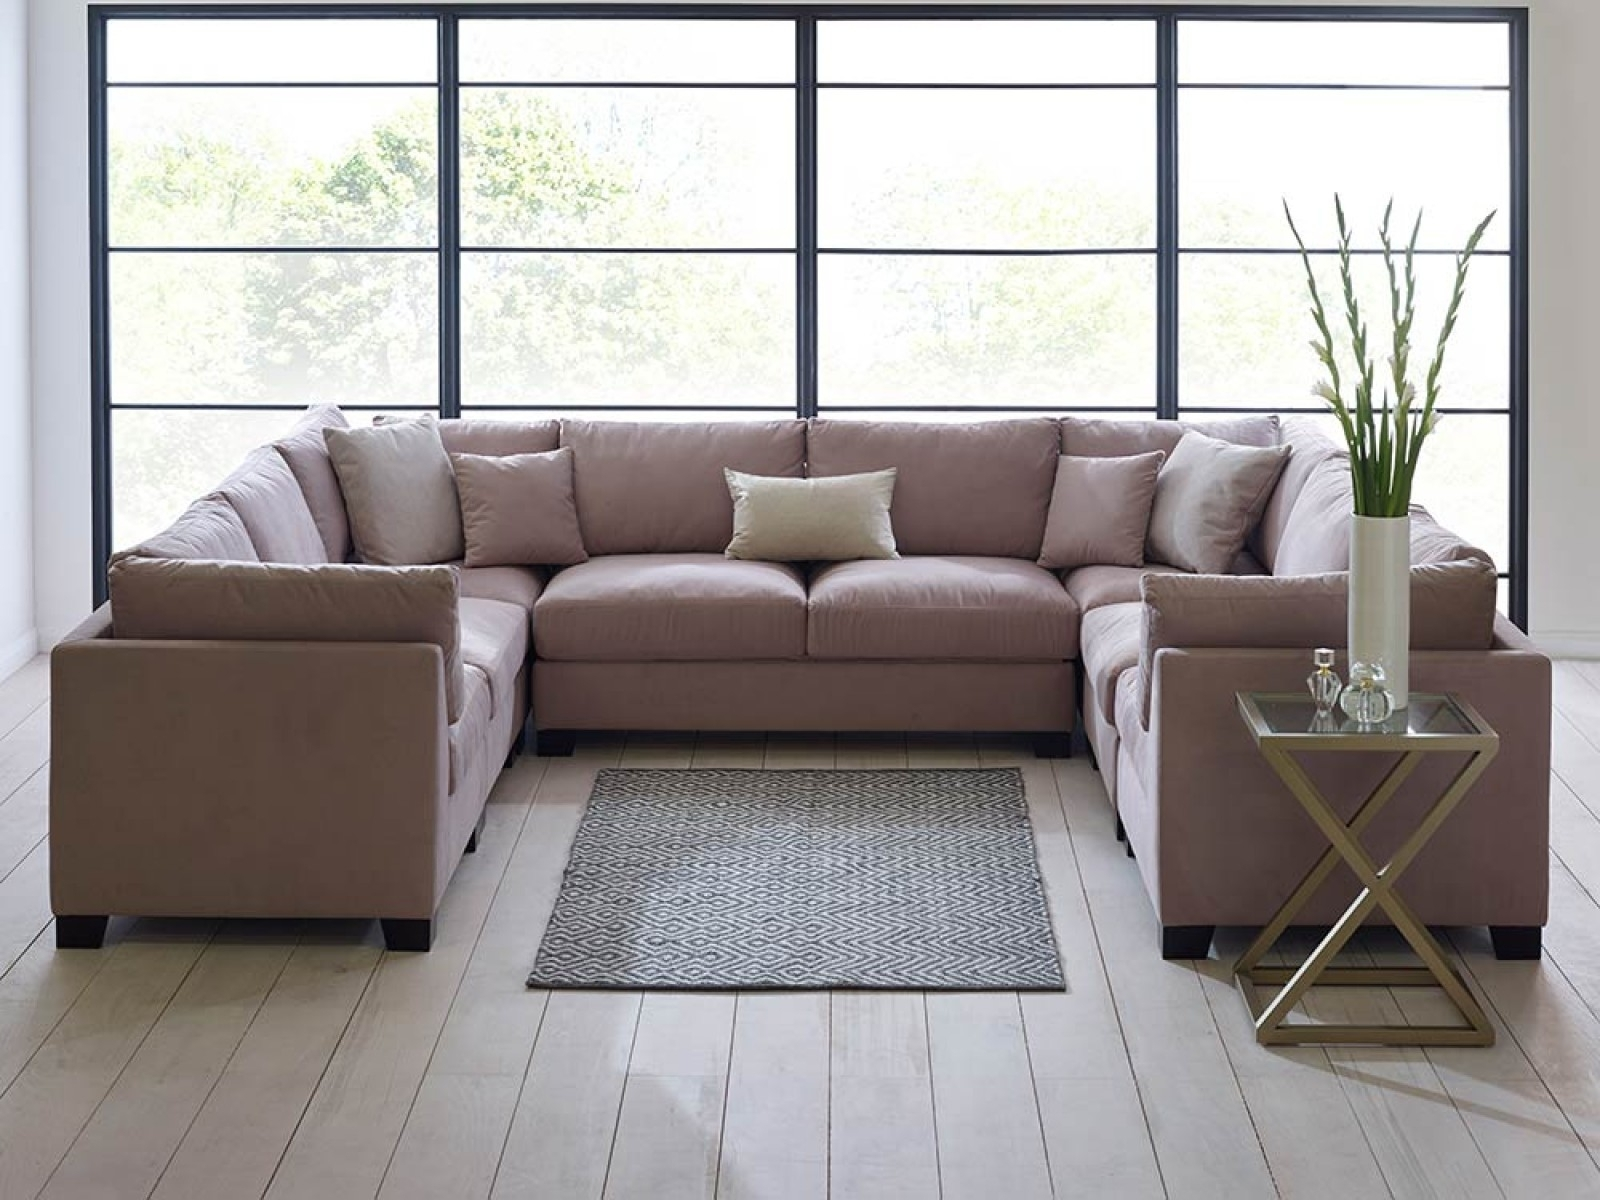 Sofa Set With Huge U Shaped Sectionals (View 19 of 20)